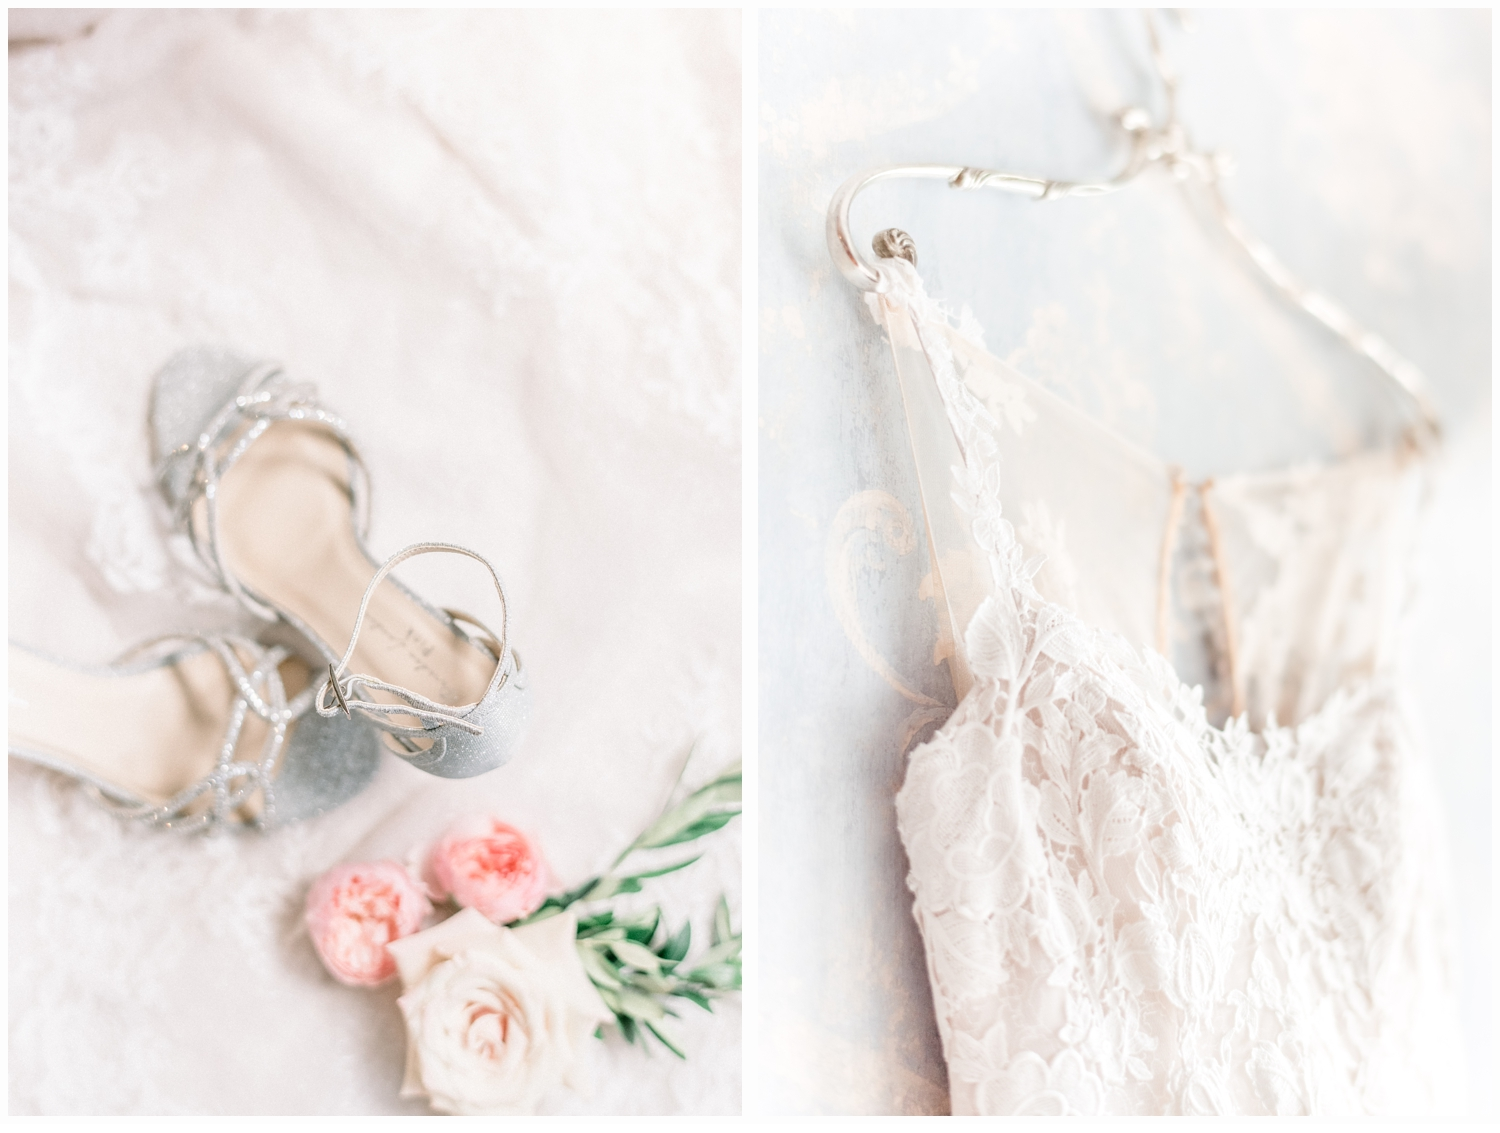 wedding gown with wedding shoes